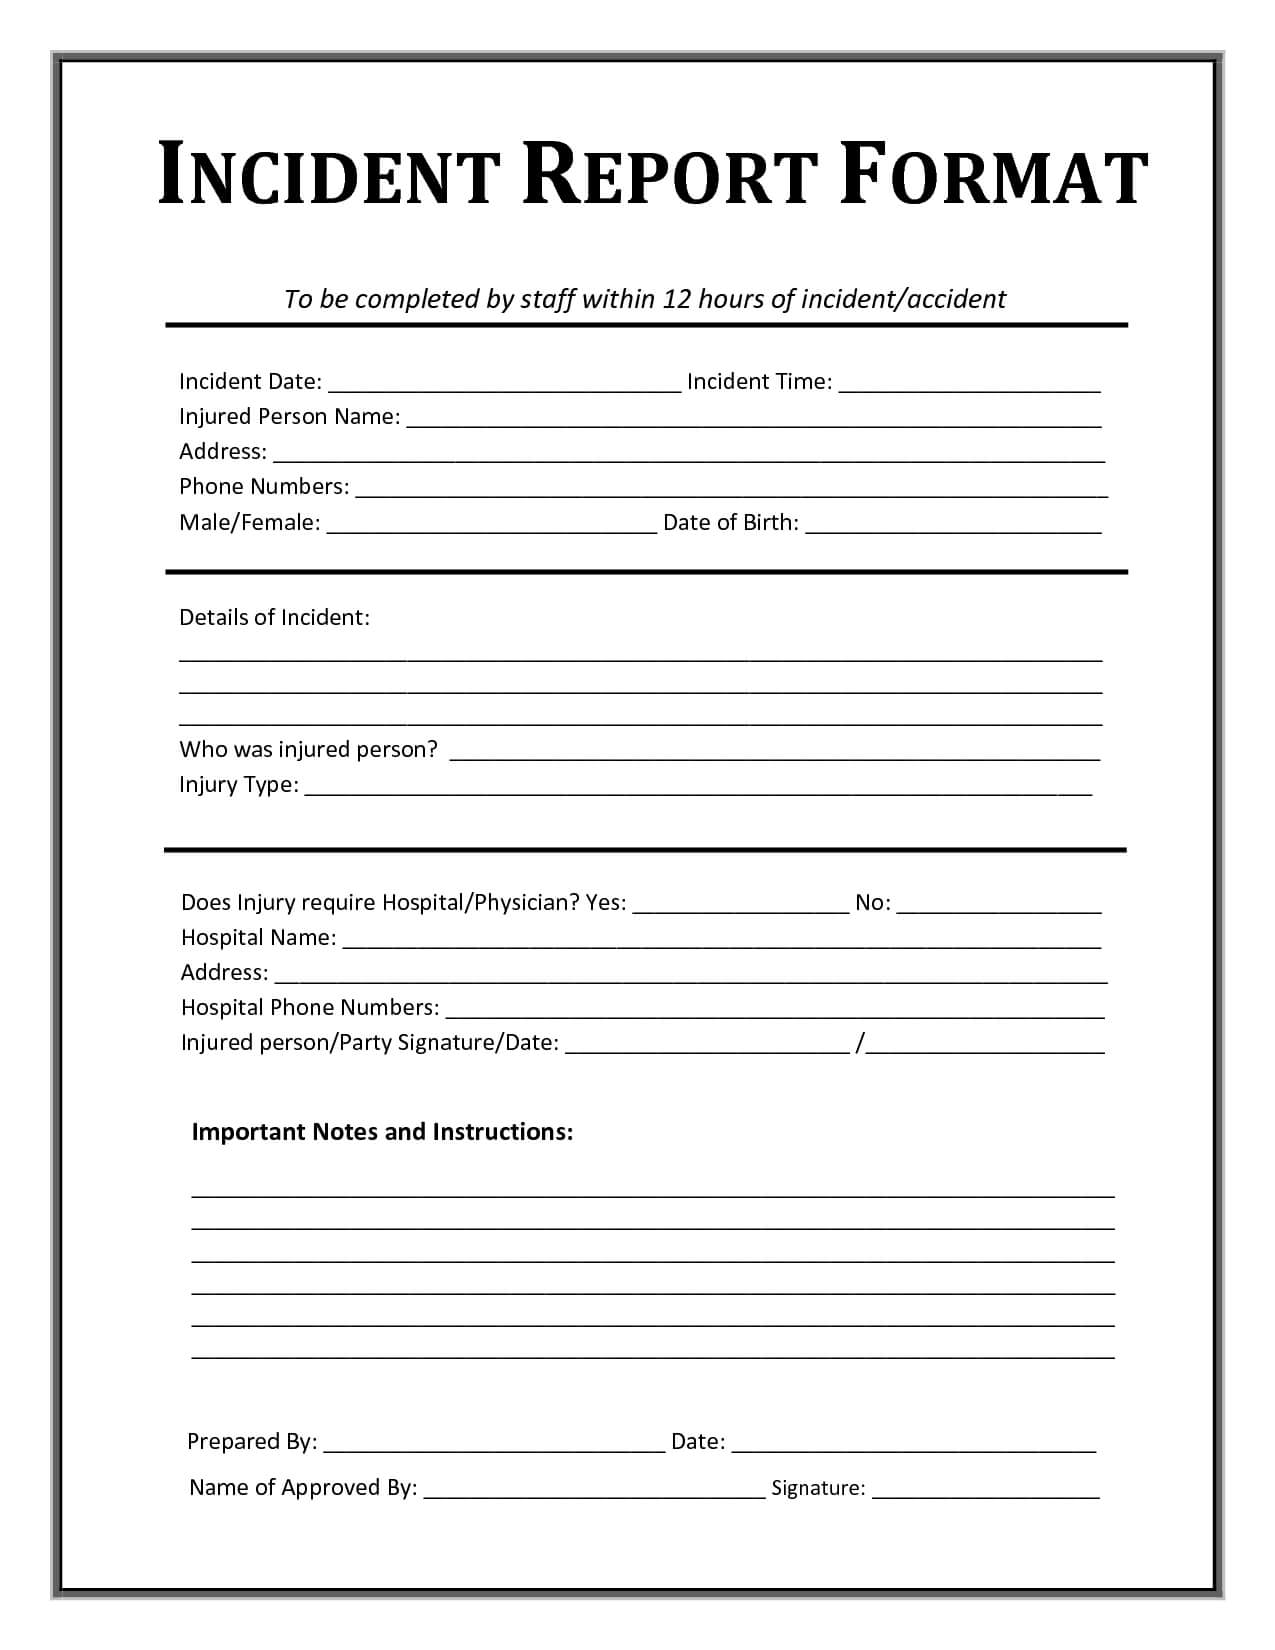 Incident Report Template | Incident Report Form, Incident For Generic Incident Report Template